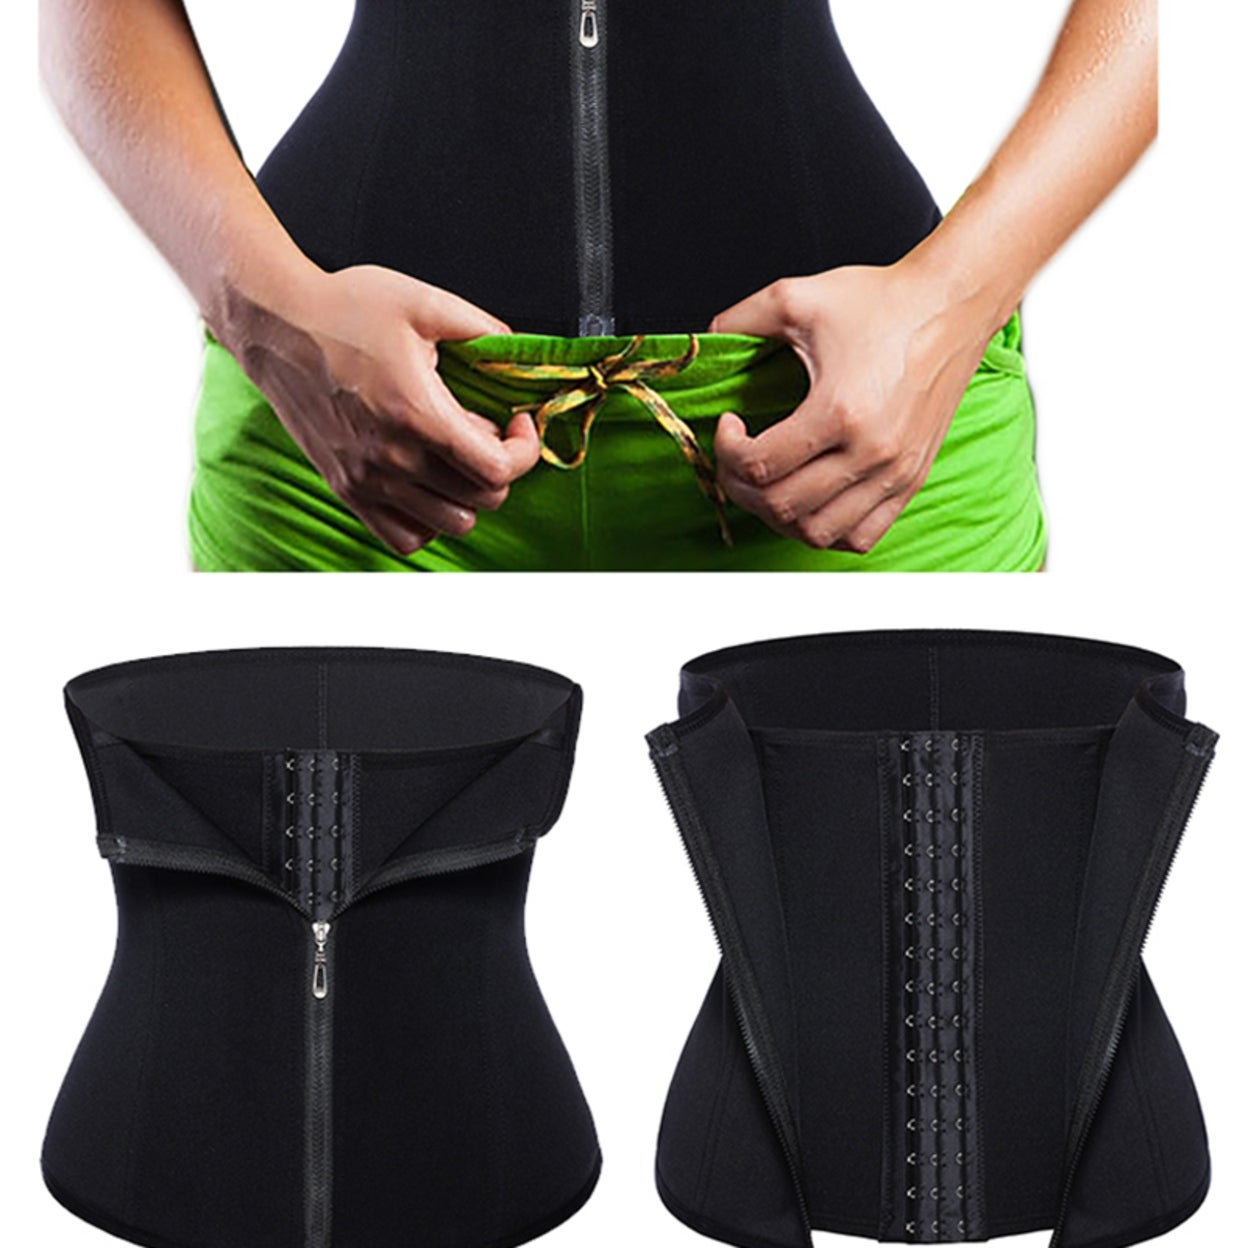 65904ef657995 Shop Waist Cincher Tummy Fat Burning Fitness Body Shaper Corset - black -  Free Shipping On Orders Over  45 - Overstock - 22578663